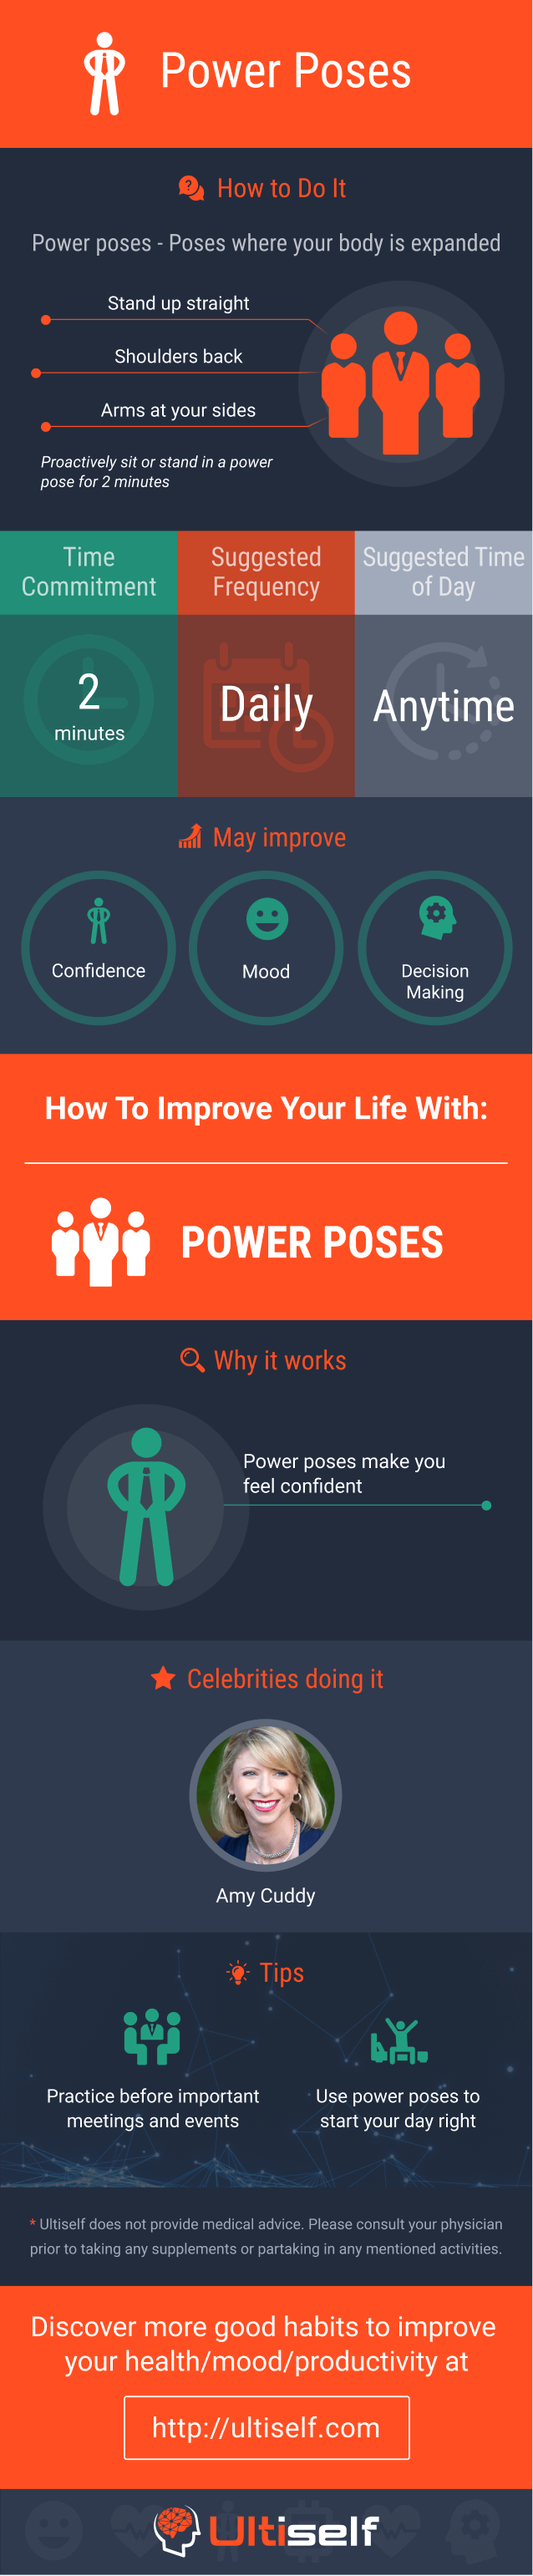 Power Poses infographic